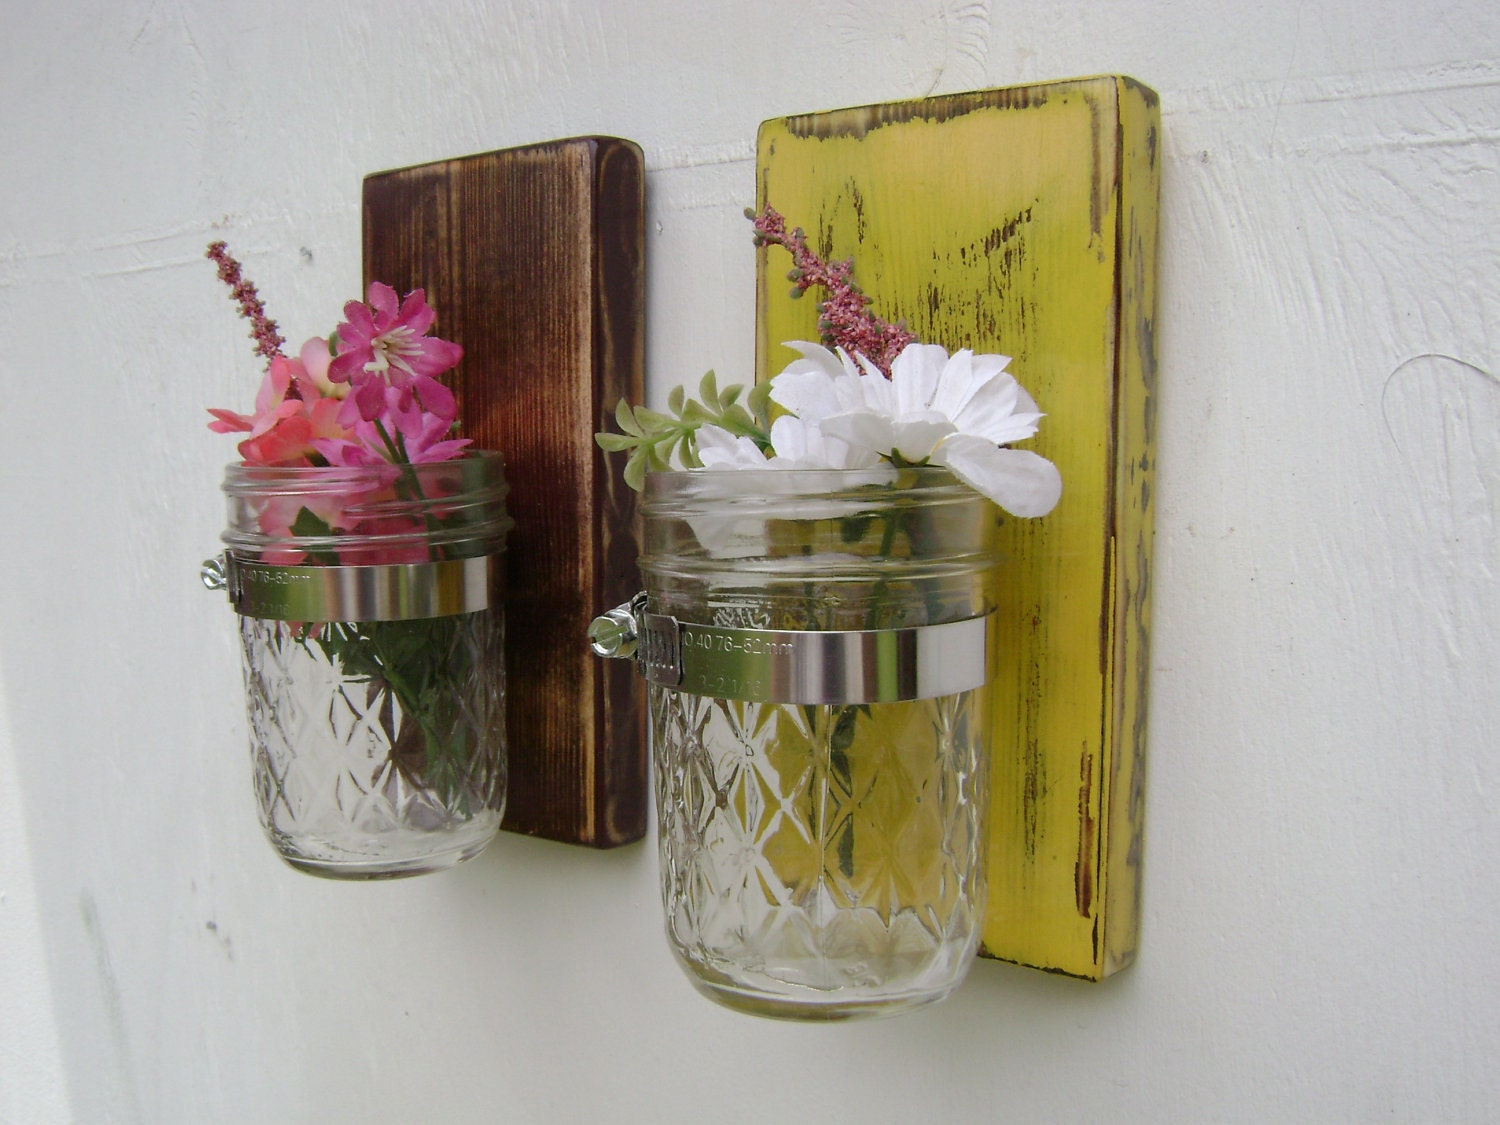 Mason Jar Wall Sconce Etsy : wall hanging wood vase sconce mason jar french by UncleJohnsCabin